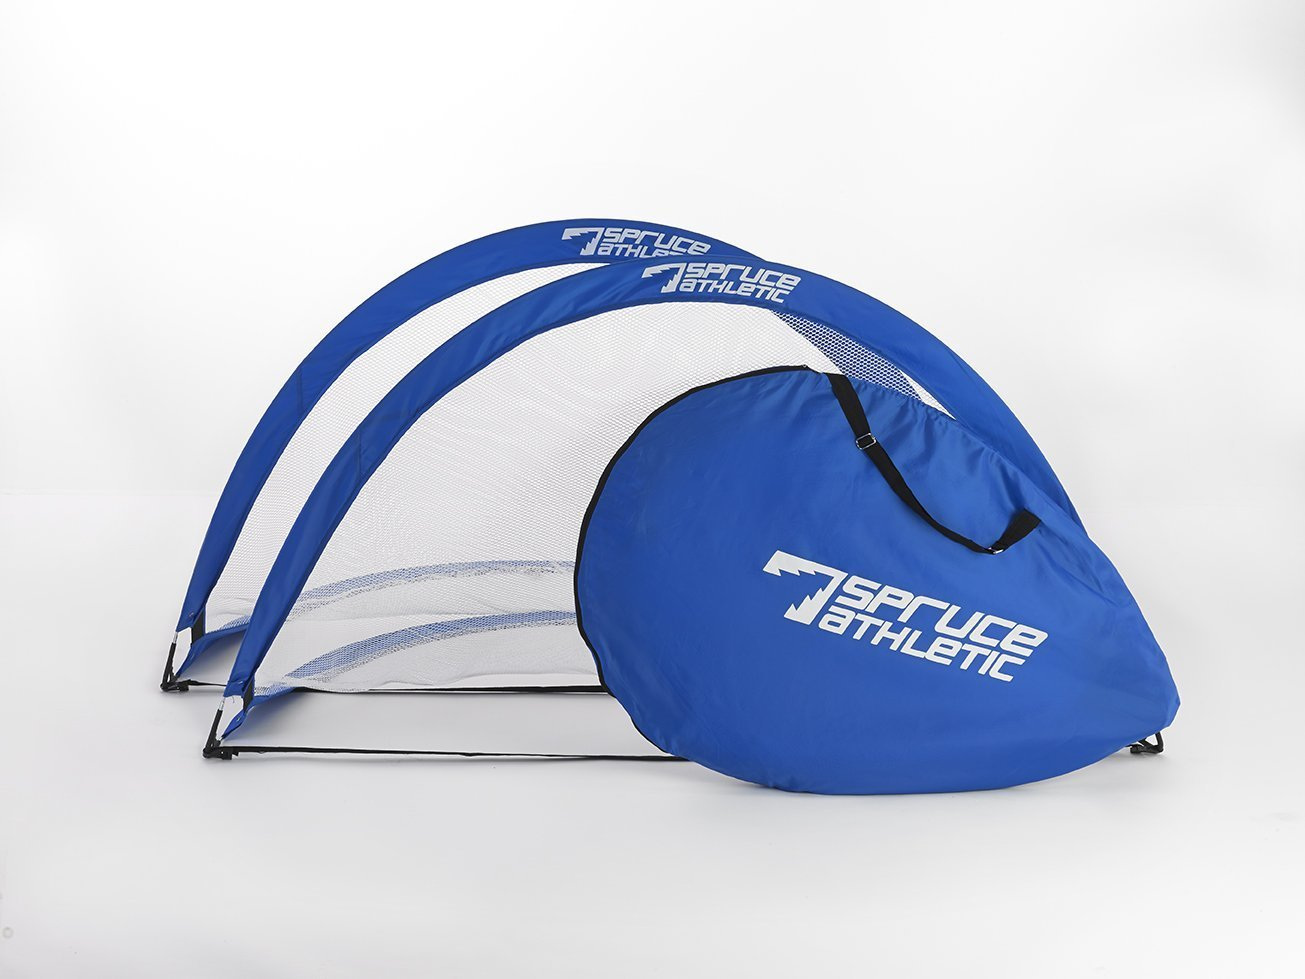 1 Pair of Competition Quality 6ft Pop-up Soccer Goals with Free Carry BagDurable High Quality Collapsible Easy to Pack and Store (ROYAL BLUE) [並行輸入品] B077QH364M